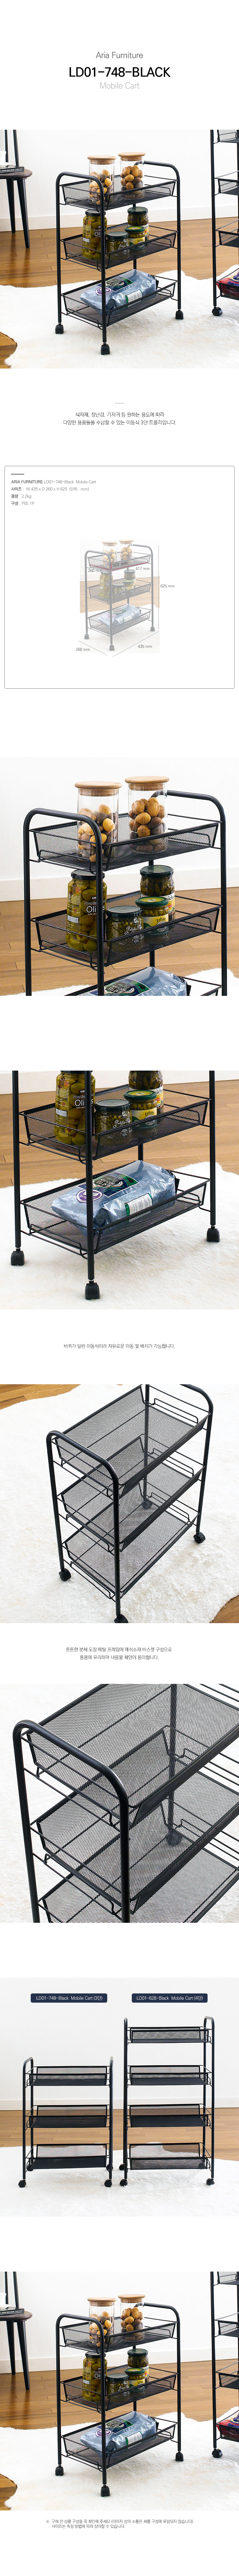 LD01-748-Black_mesh_cart.jpg